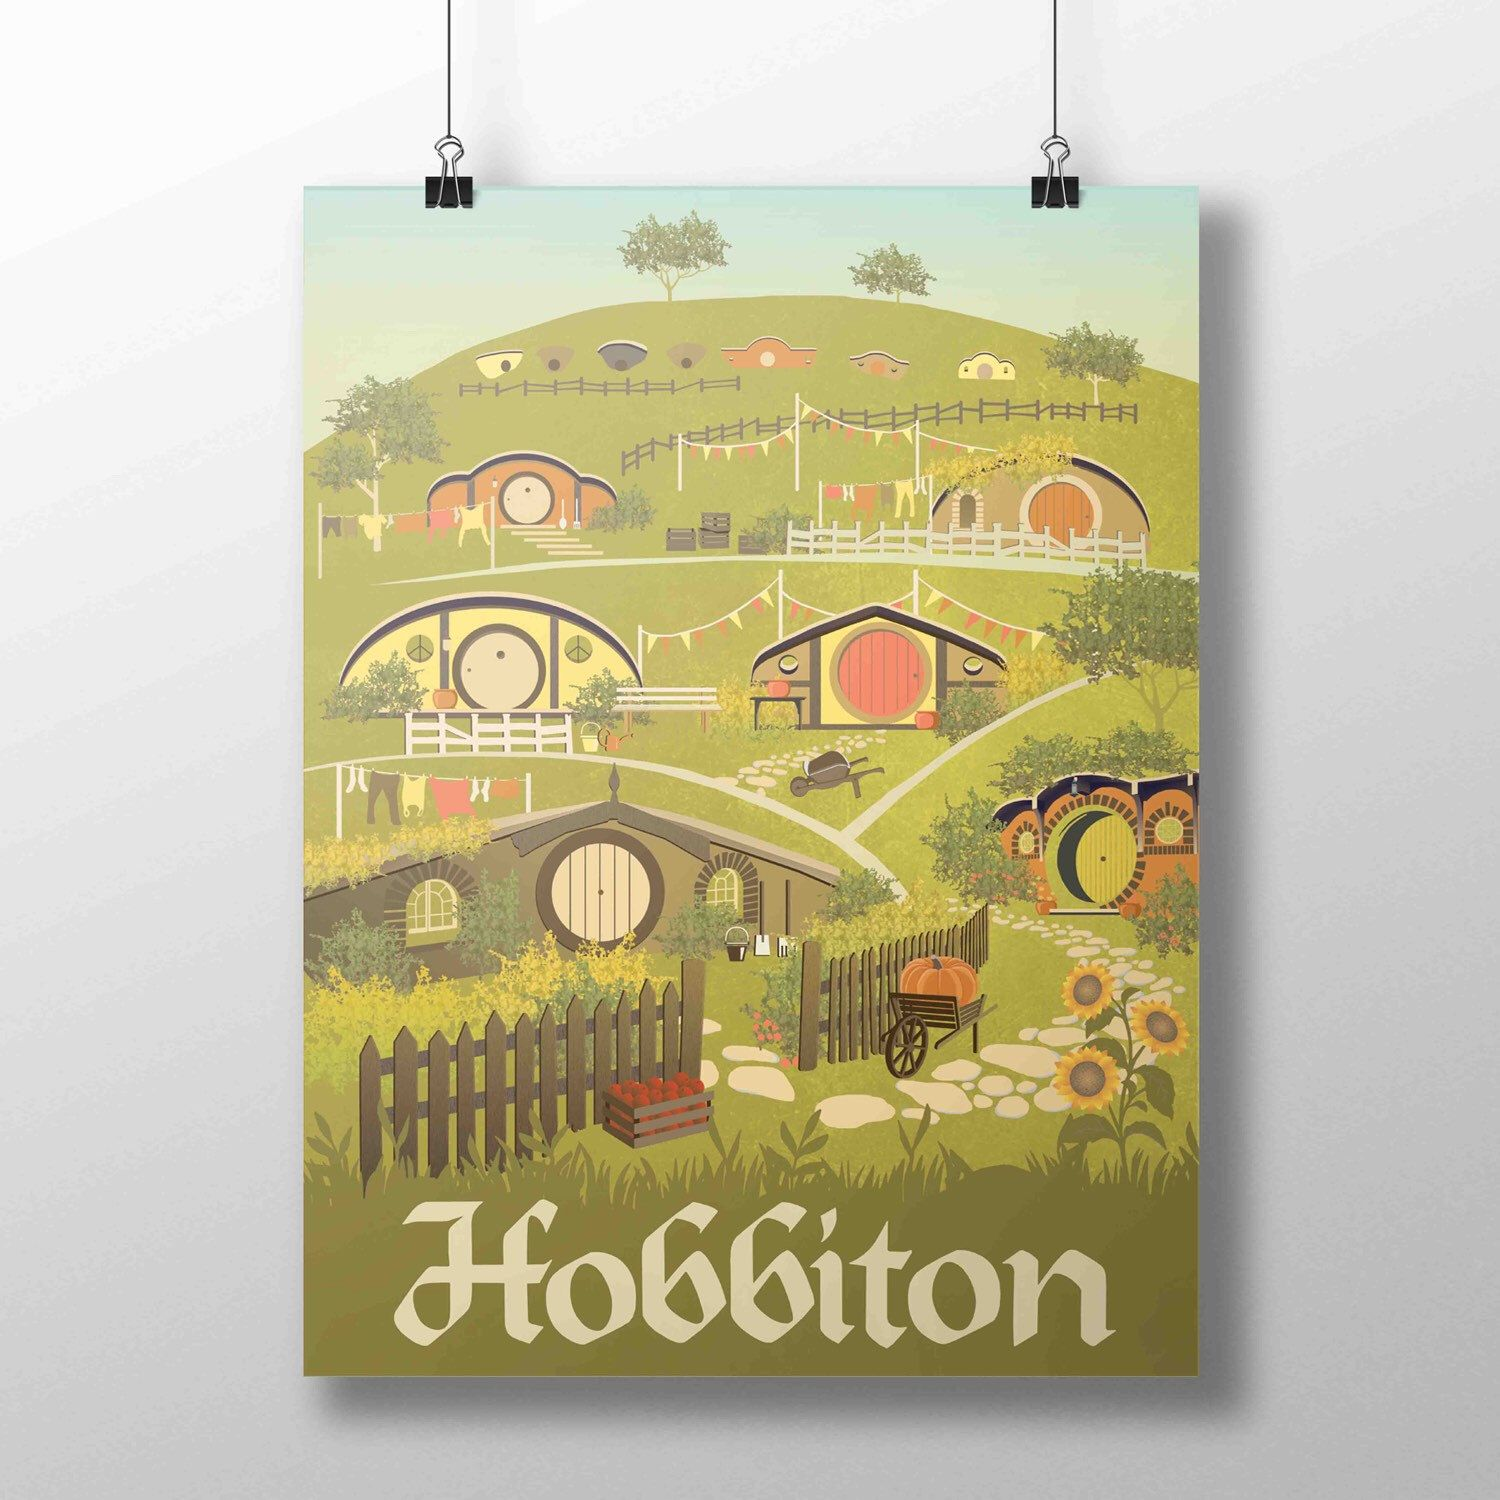 New Lord of the Rings poster! Hobbiton village in a retro travel style.